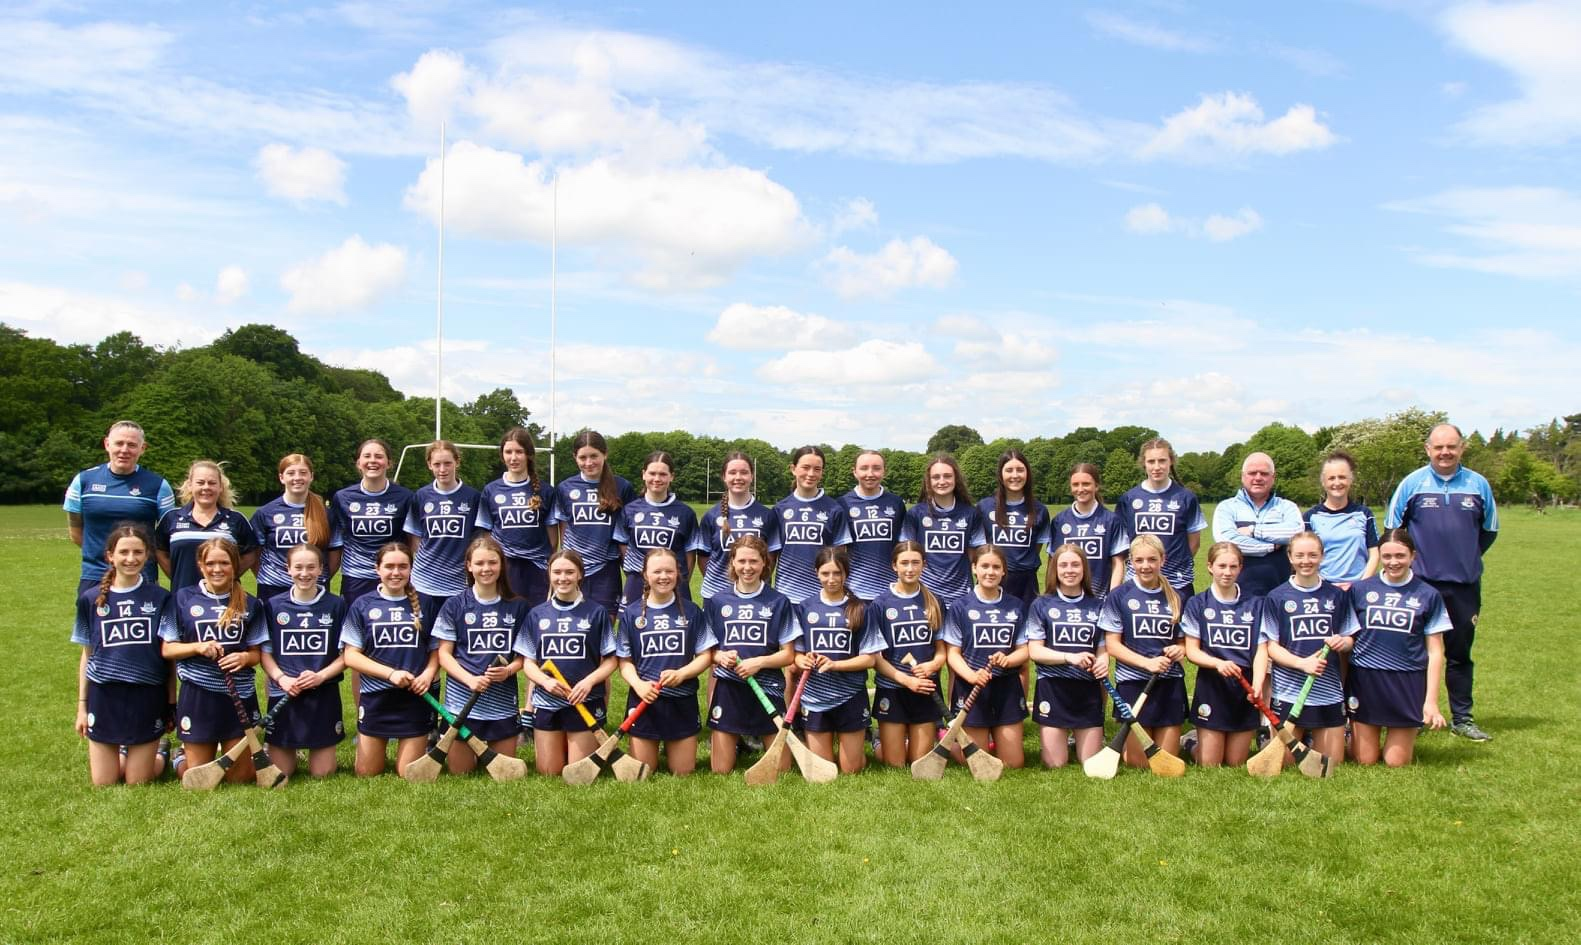 U16 Dublin Camogie squad and management pictured at a training session